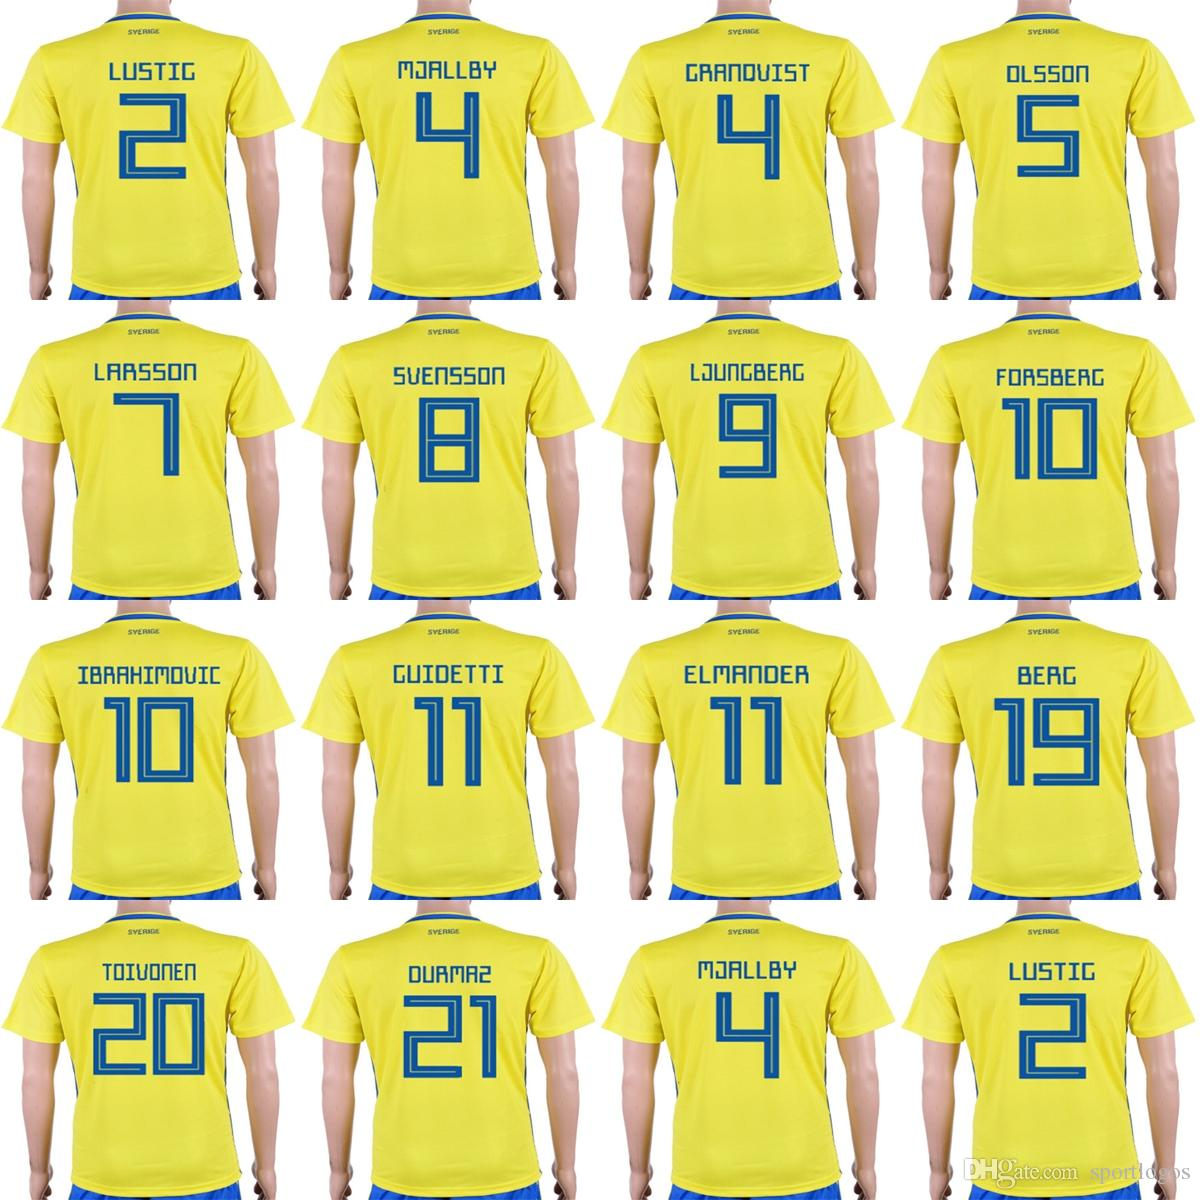 b6d670693 ... 2016 2017 country national team soccer jerseys 4243e 98b34  purchase  cheap custom 2018 world cup sweden men lady kid 10 zlatan ibrahimovic 9  marcus berg